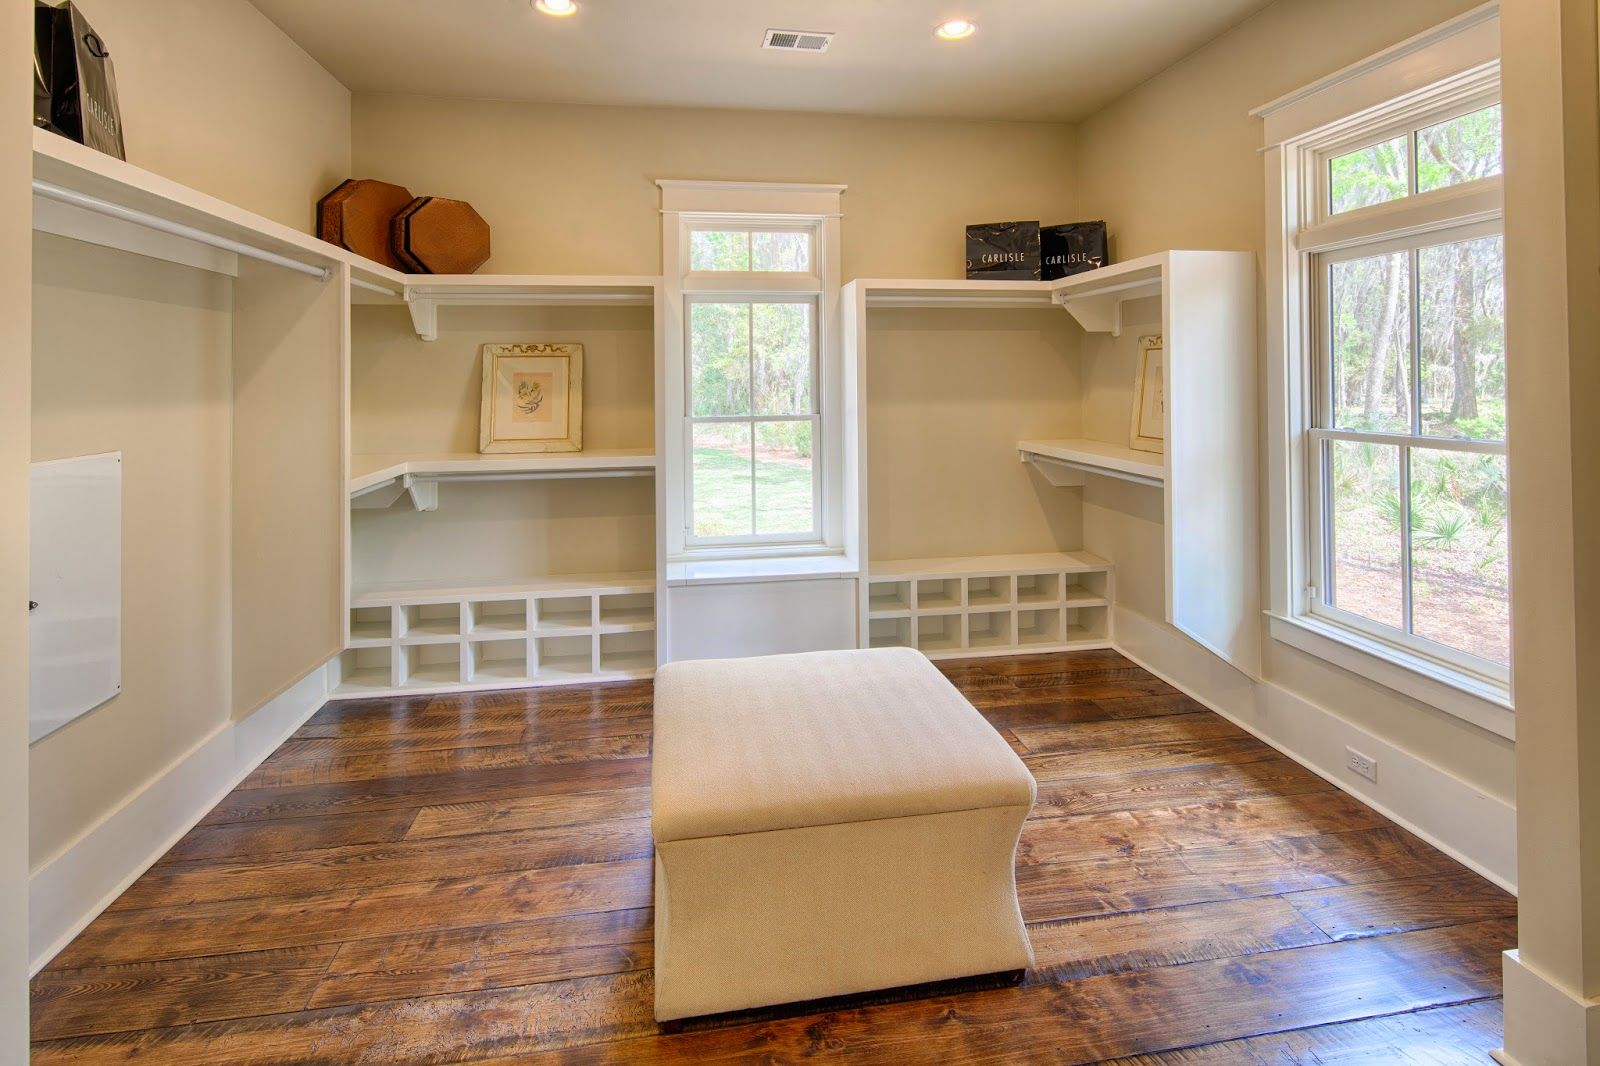 the master suite features a walk in closet with windows